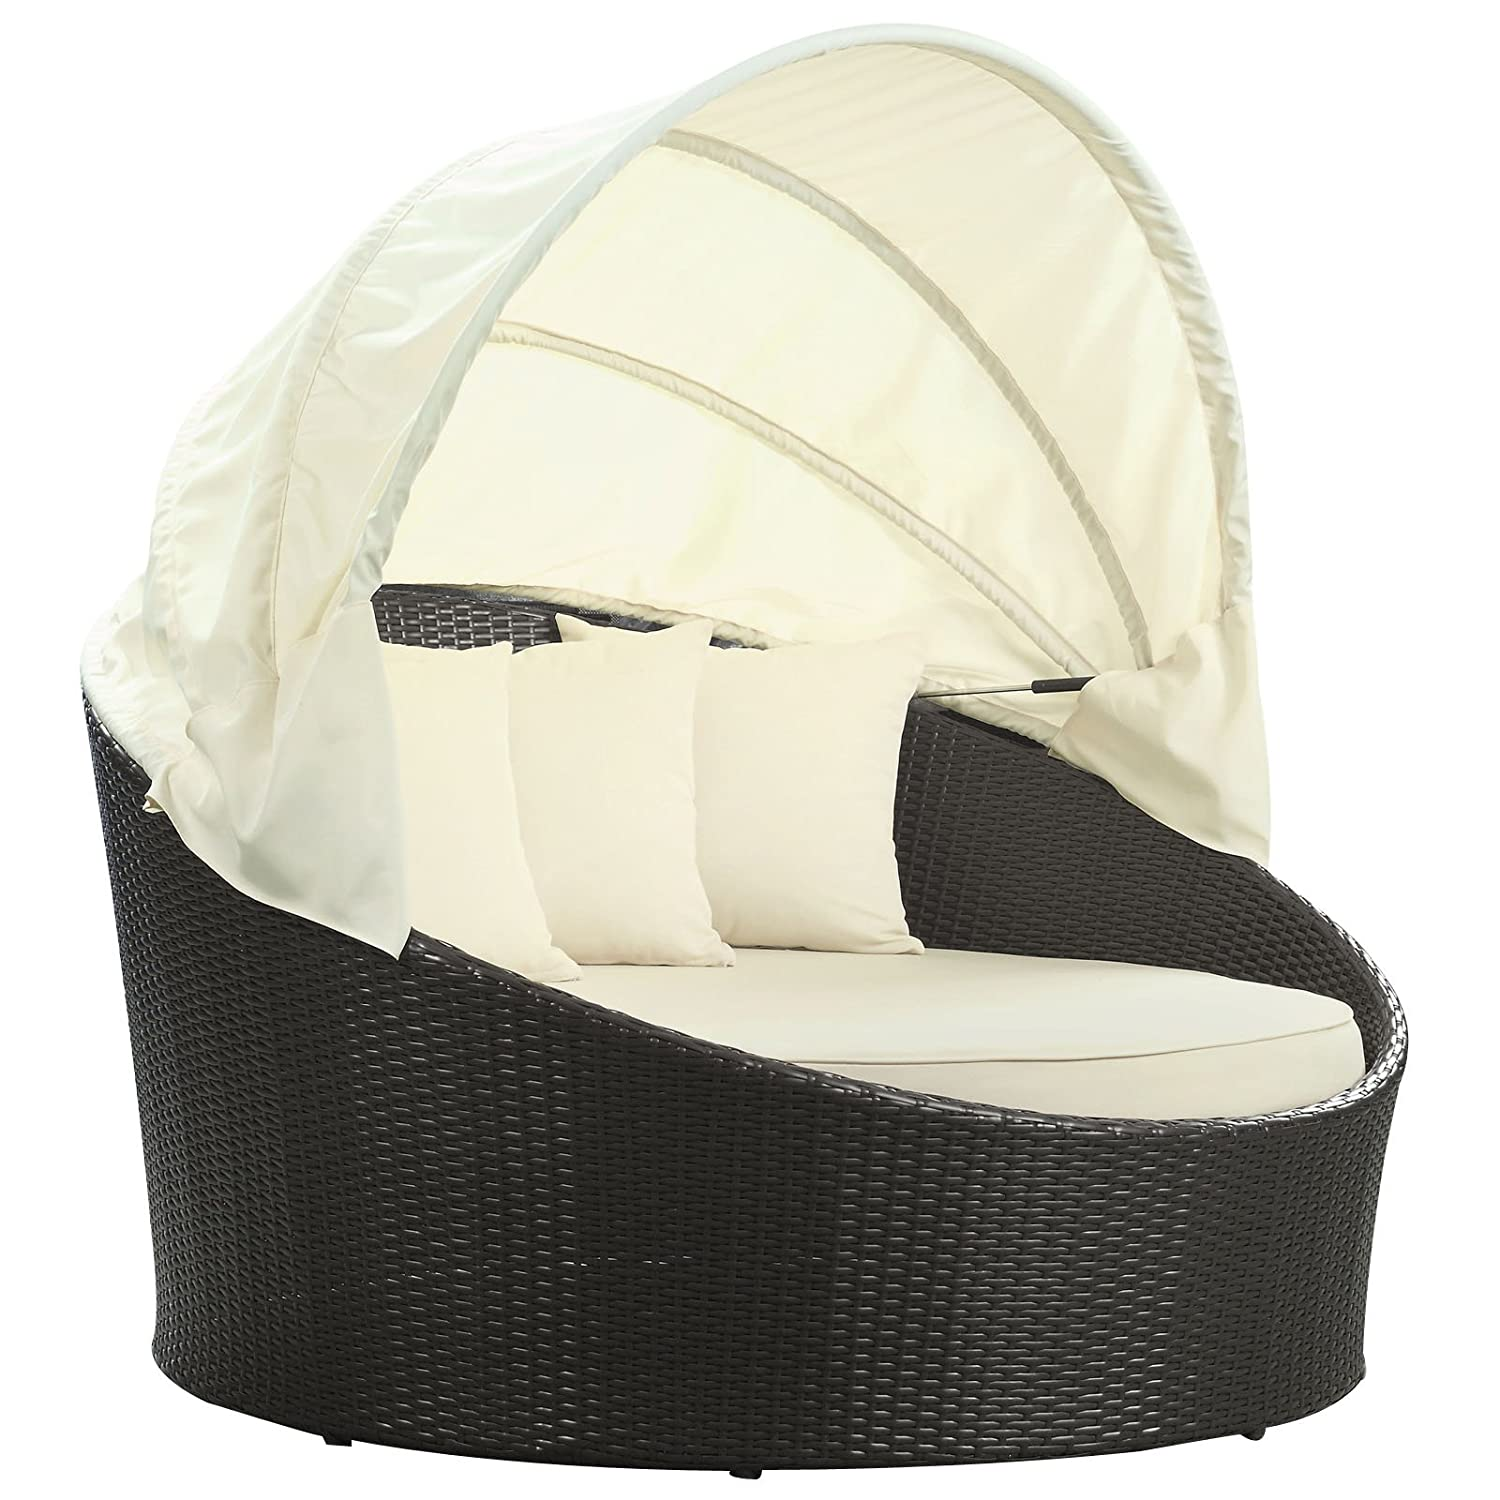 Amazon.com : Modway Siesta Outdoor Wicker Patio Canopy Bed in Espresso with  White Cushions : Patio Furniture Cushions : Garden & Outdoor